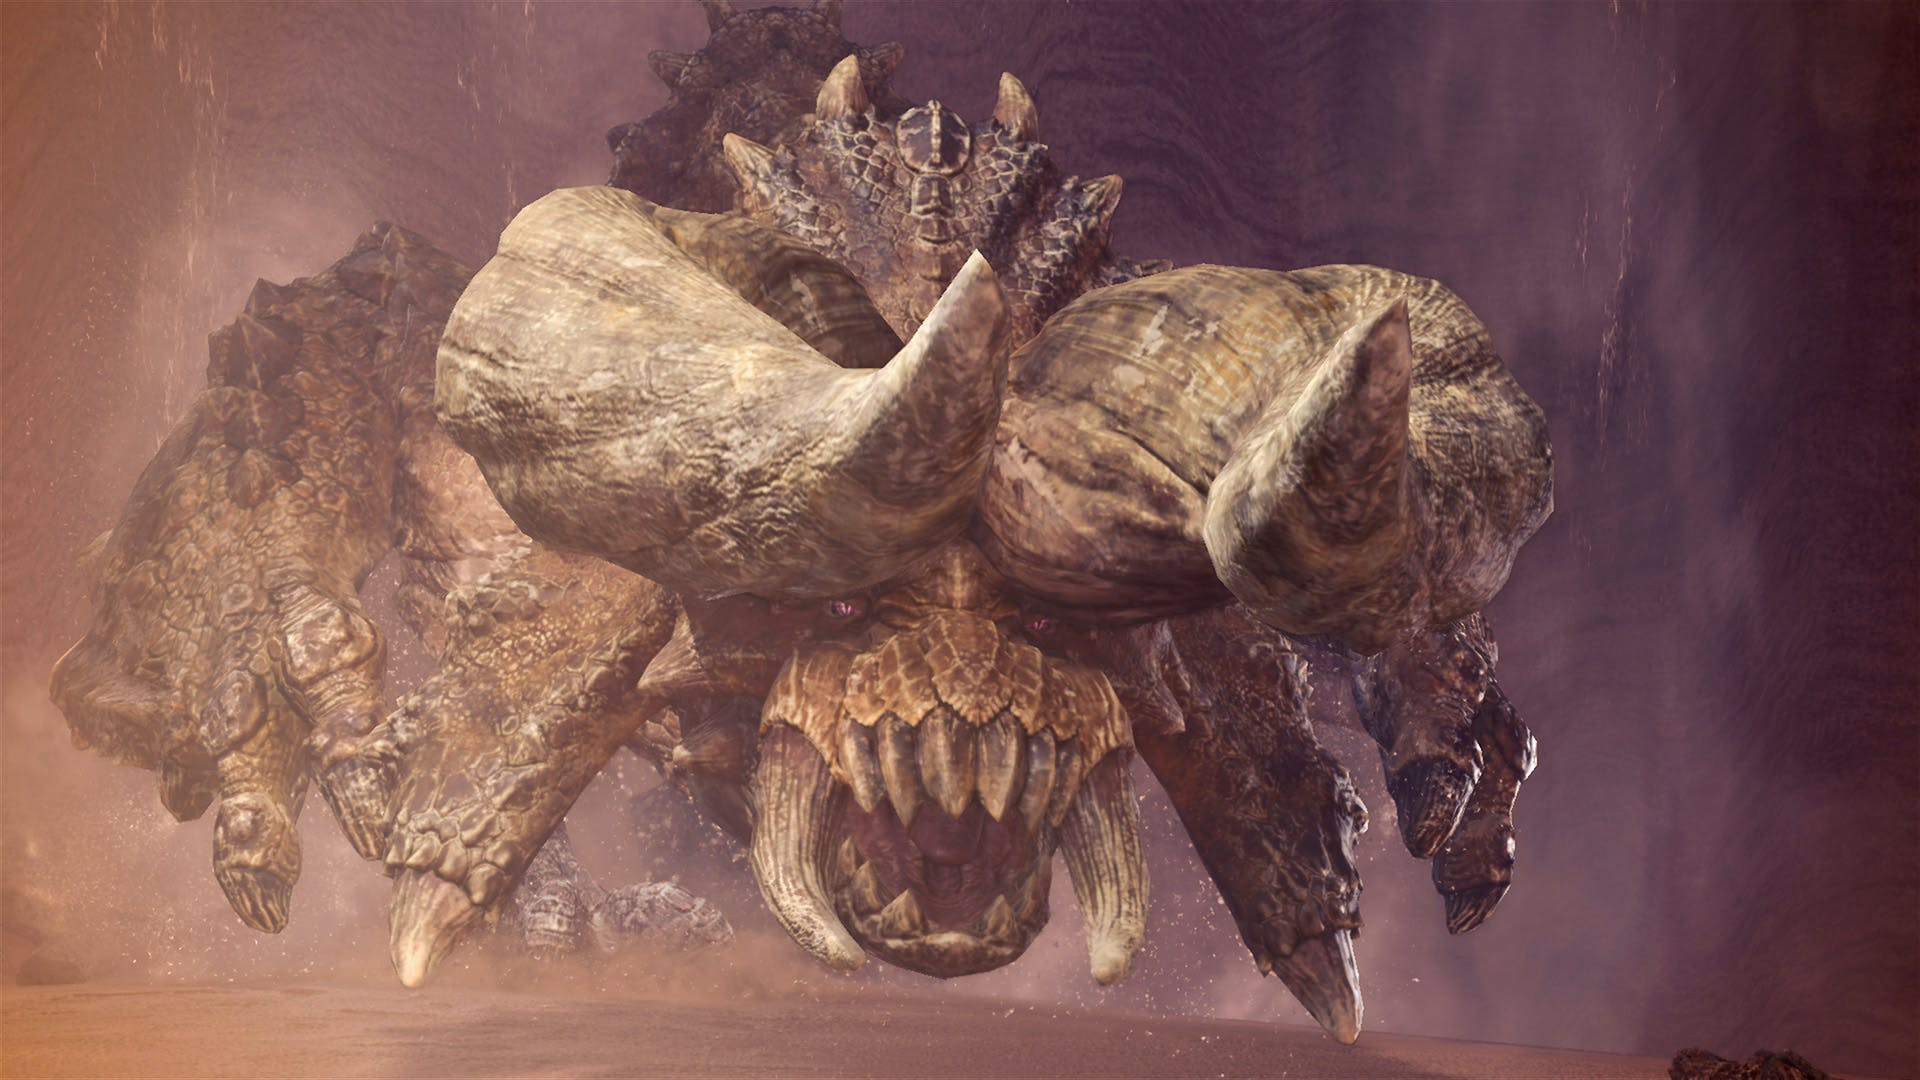 https://images.prismic.io/fanatical/8e889ccaa4126d479ca8f847ab925b2252c77115_monster-hunter-world-how-to-kill-diablos_feature.jpg?auto=compress,format